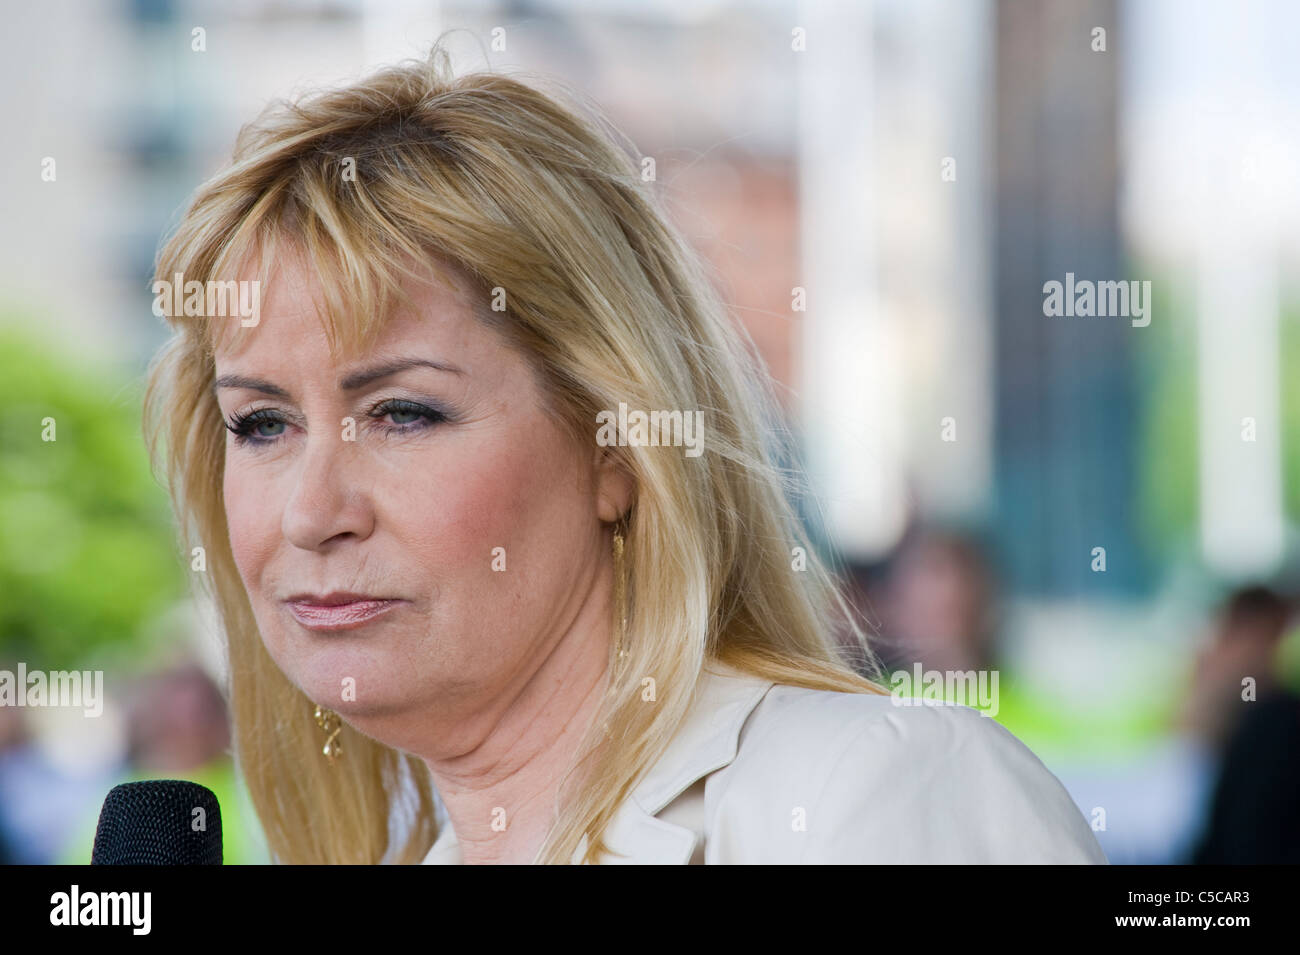 Sian Lloyd TV personality speaking at protest rally against proposed windfarms and infrastructure in the Welsh countryside - Stock Image